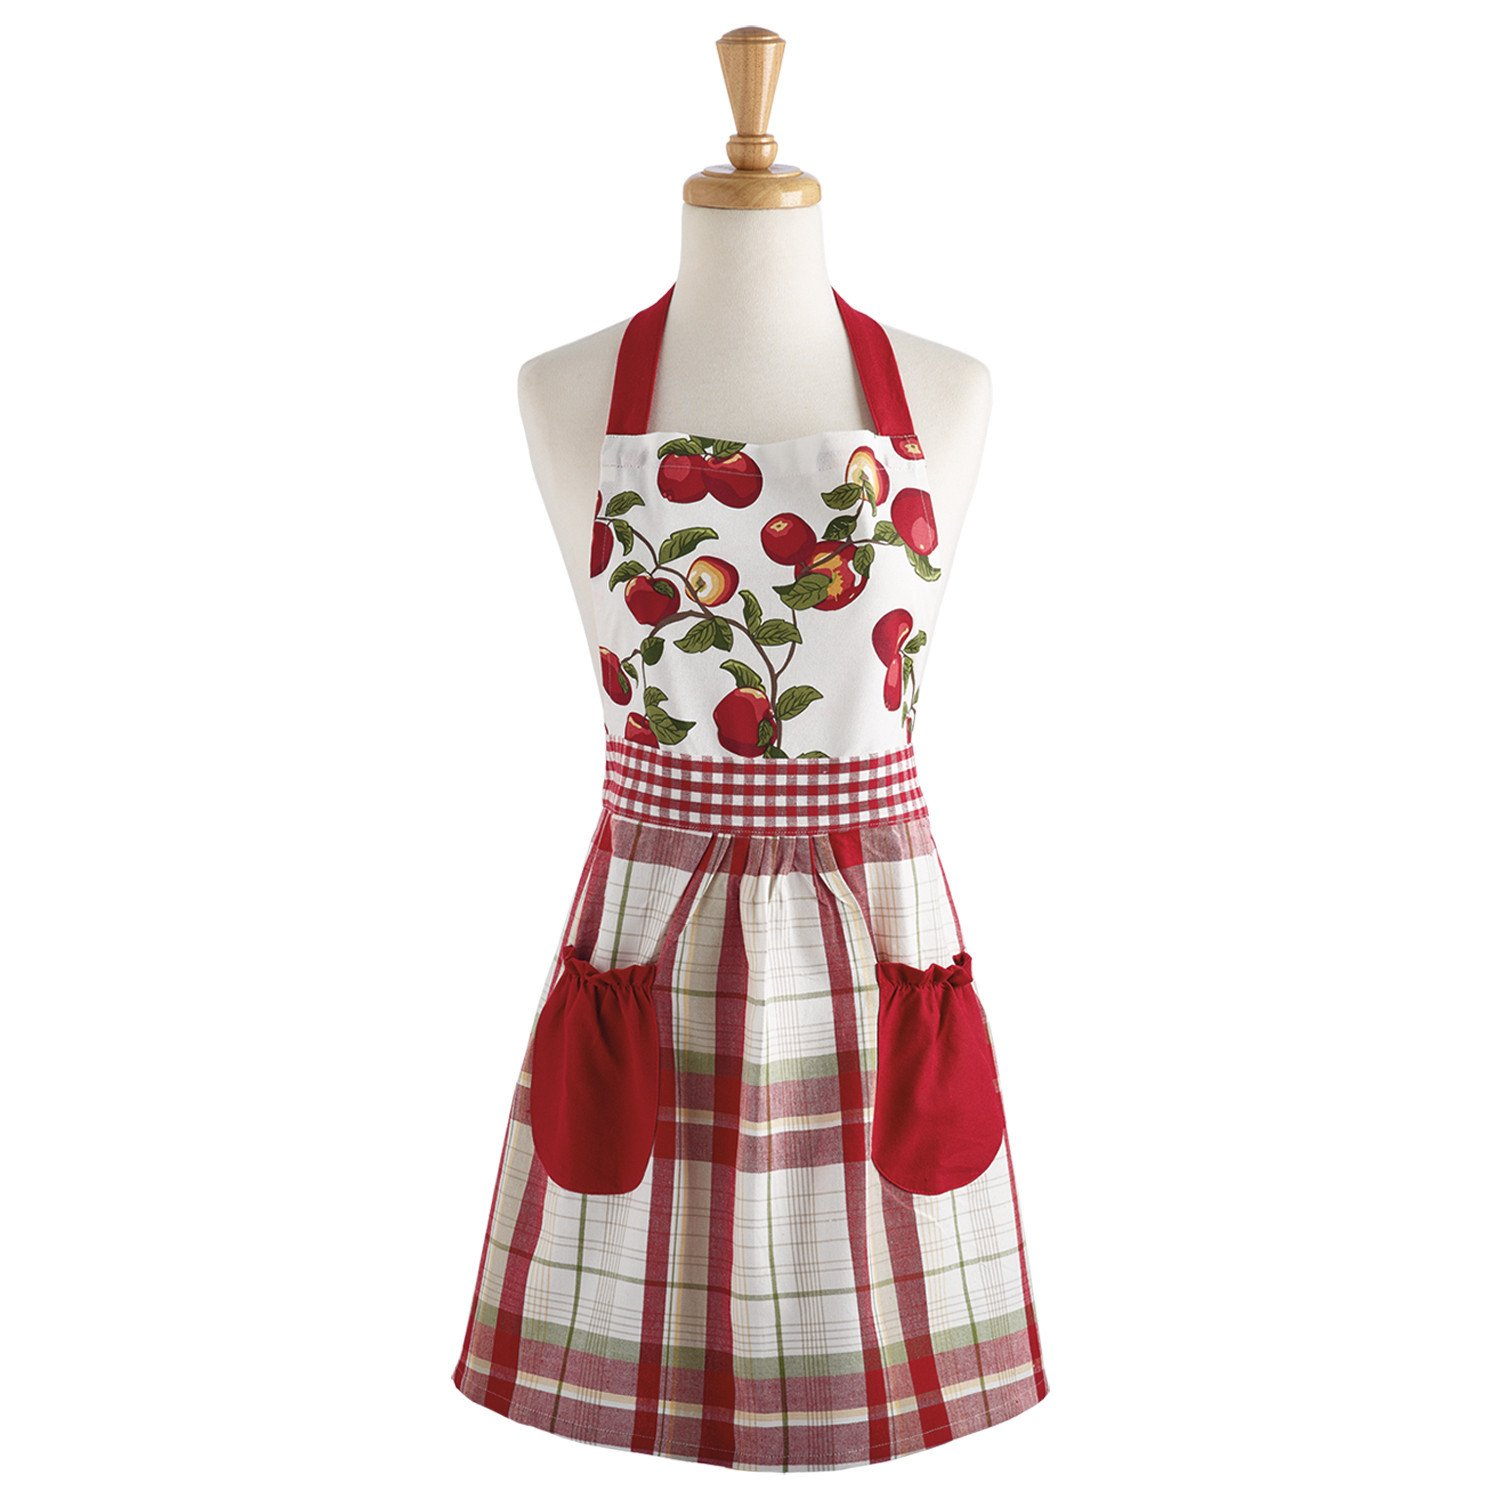 DII Design Imports Fall Apple Orchard Print and Plaid Cotton Apron